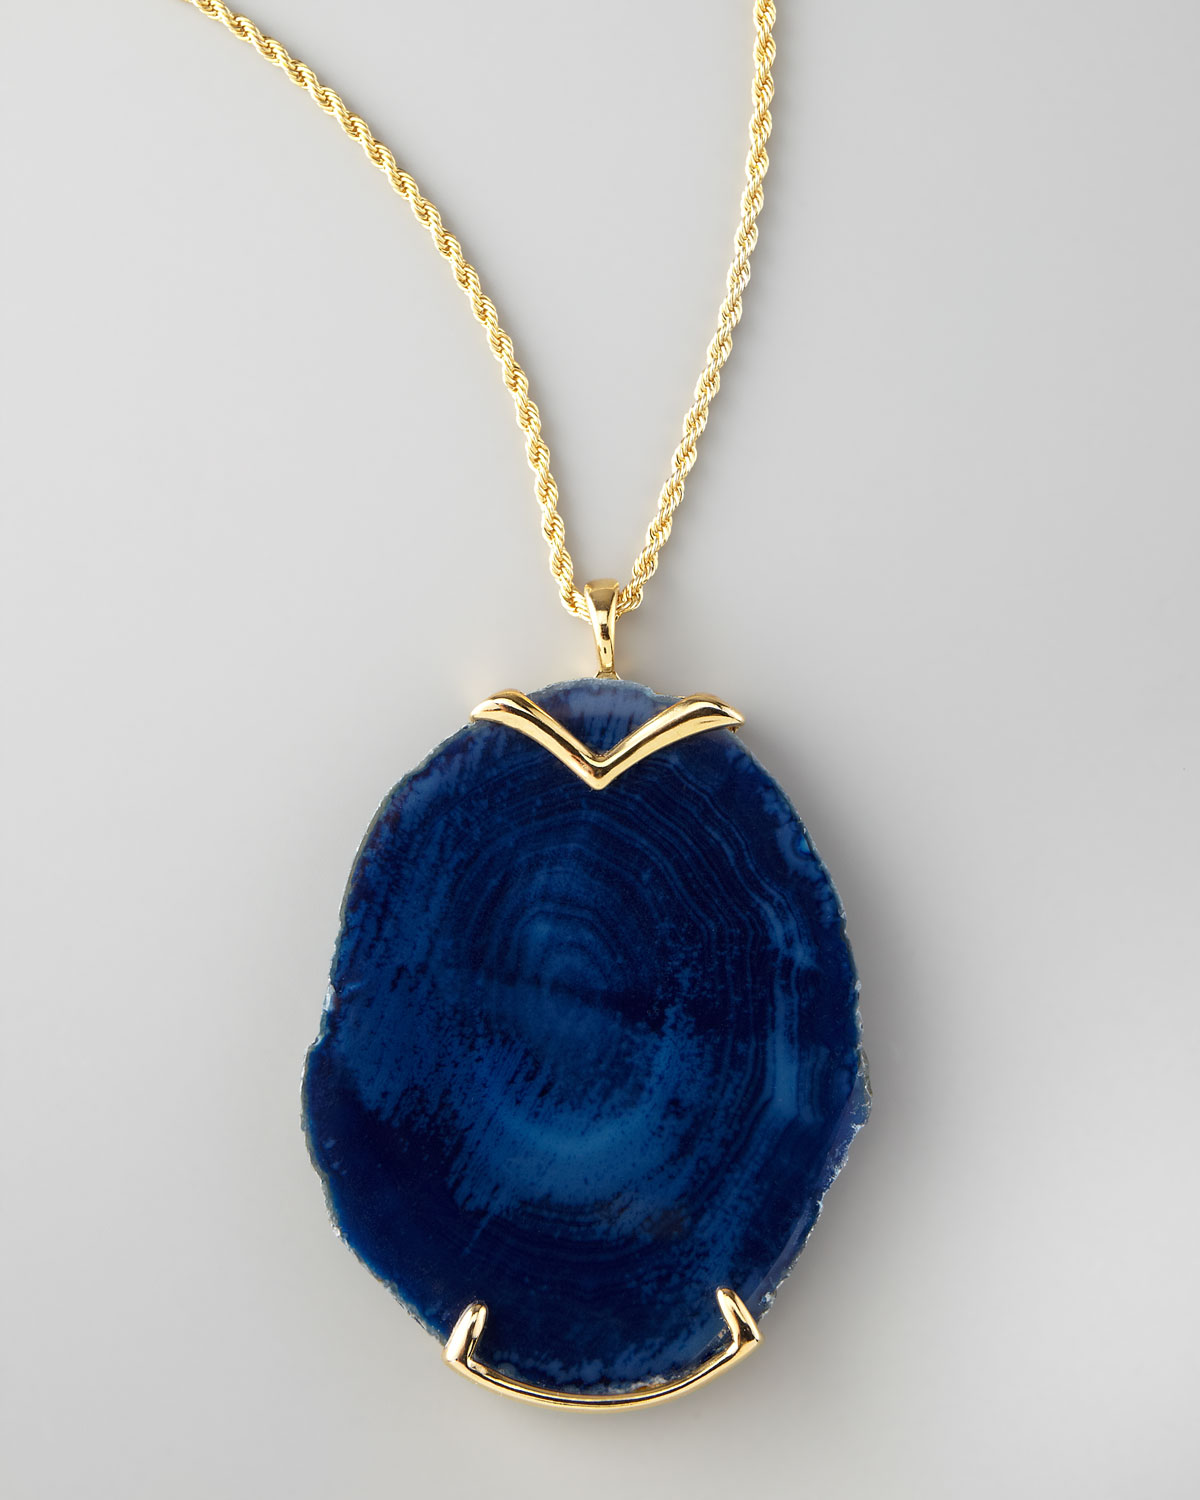 Lyst kenneth jay lane blue agate pendant necklace in blue gallery mozeypictures Choice Image